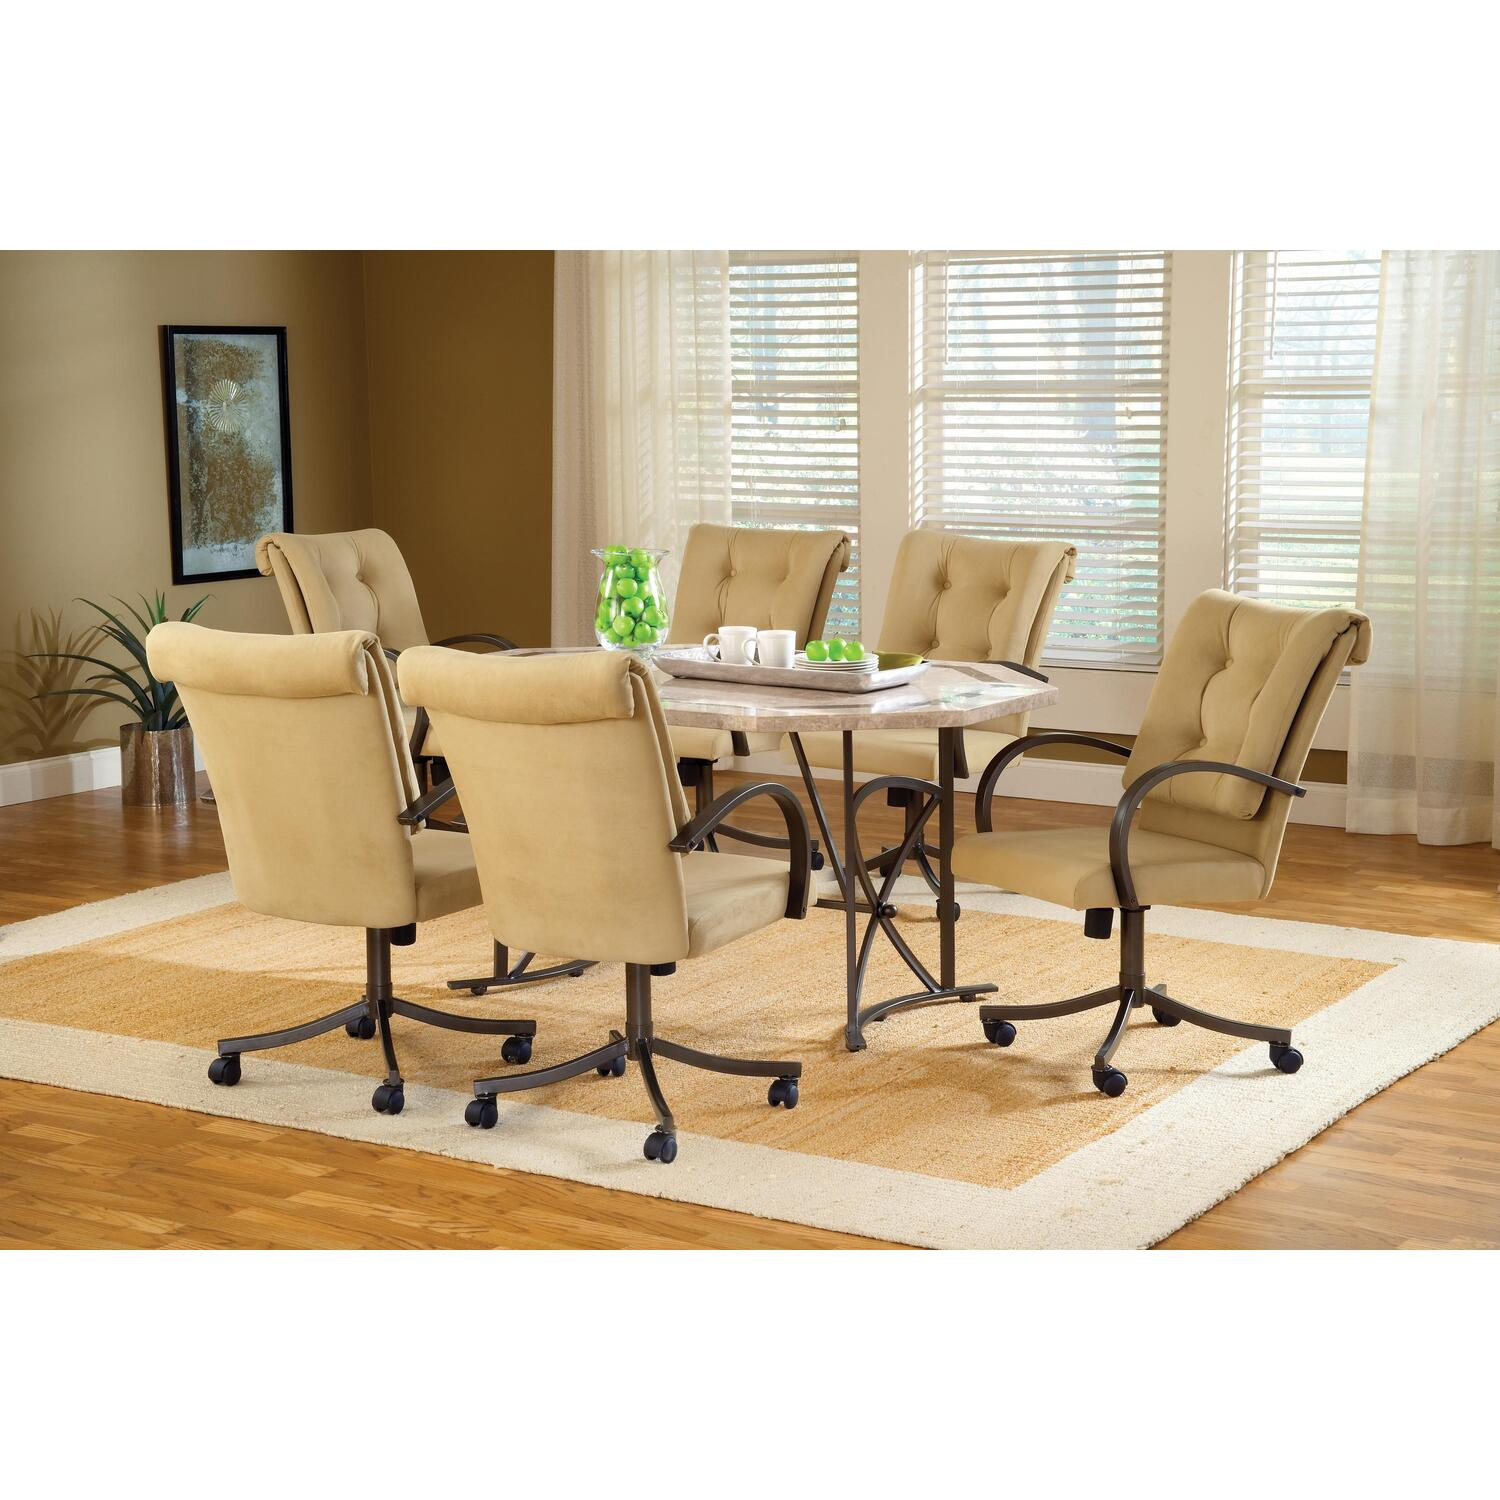 furniture harbour point 7pc octagon dining set with caster chair